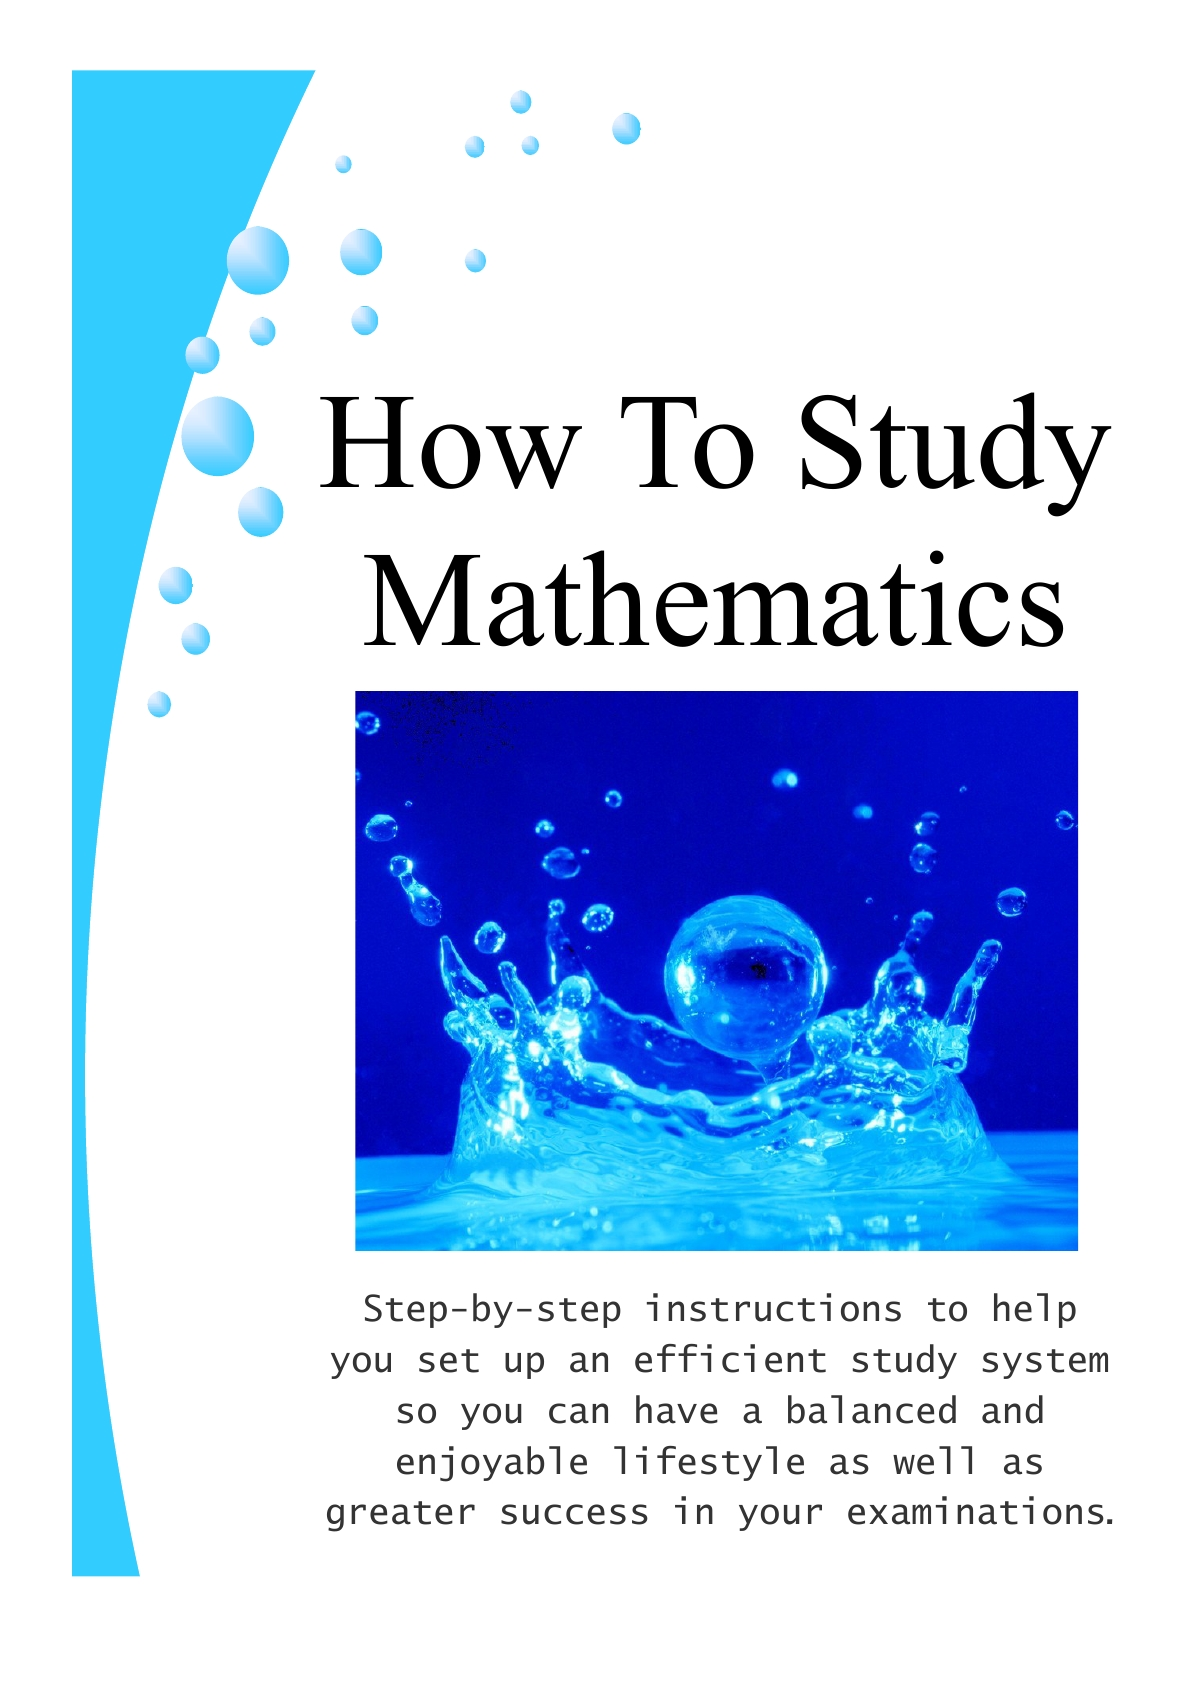 how to study math You may even end up loving mathematics by the end of the blog post 7 tips for maths problem solving 1 practice, practice & more practice it is impossible to study maths properly by just reading and listening to study maths you have to roll up your sleeves and actually solve some problems.